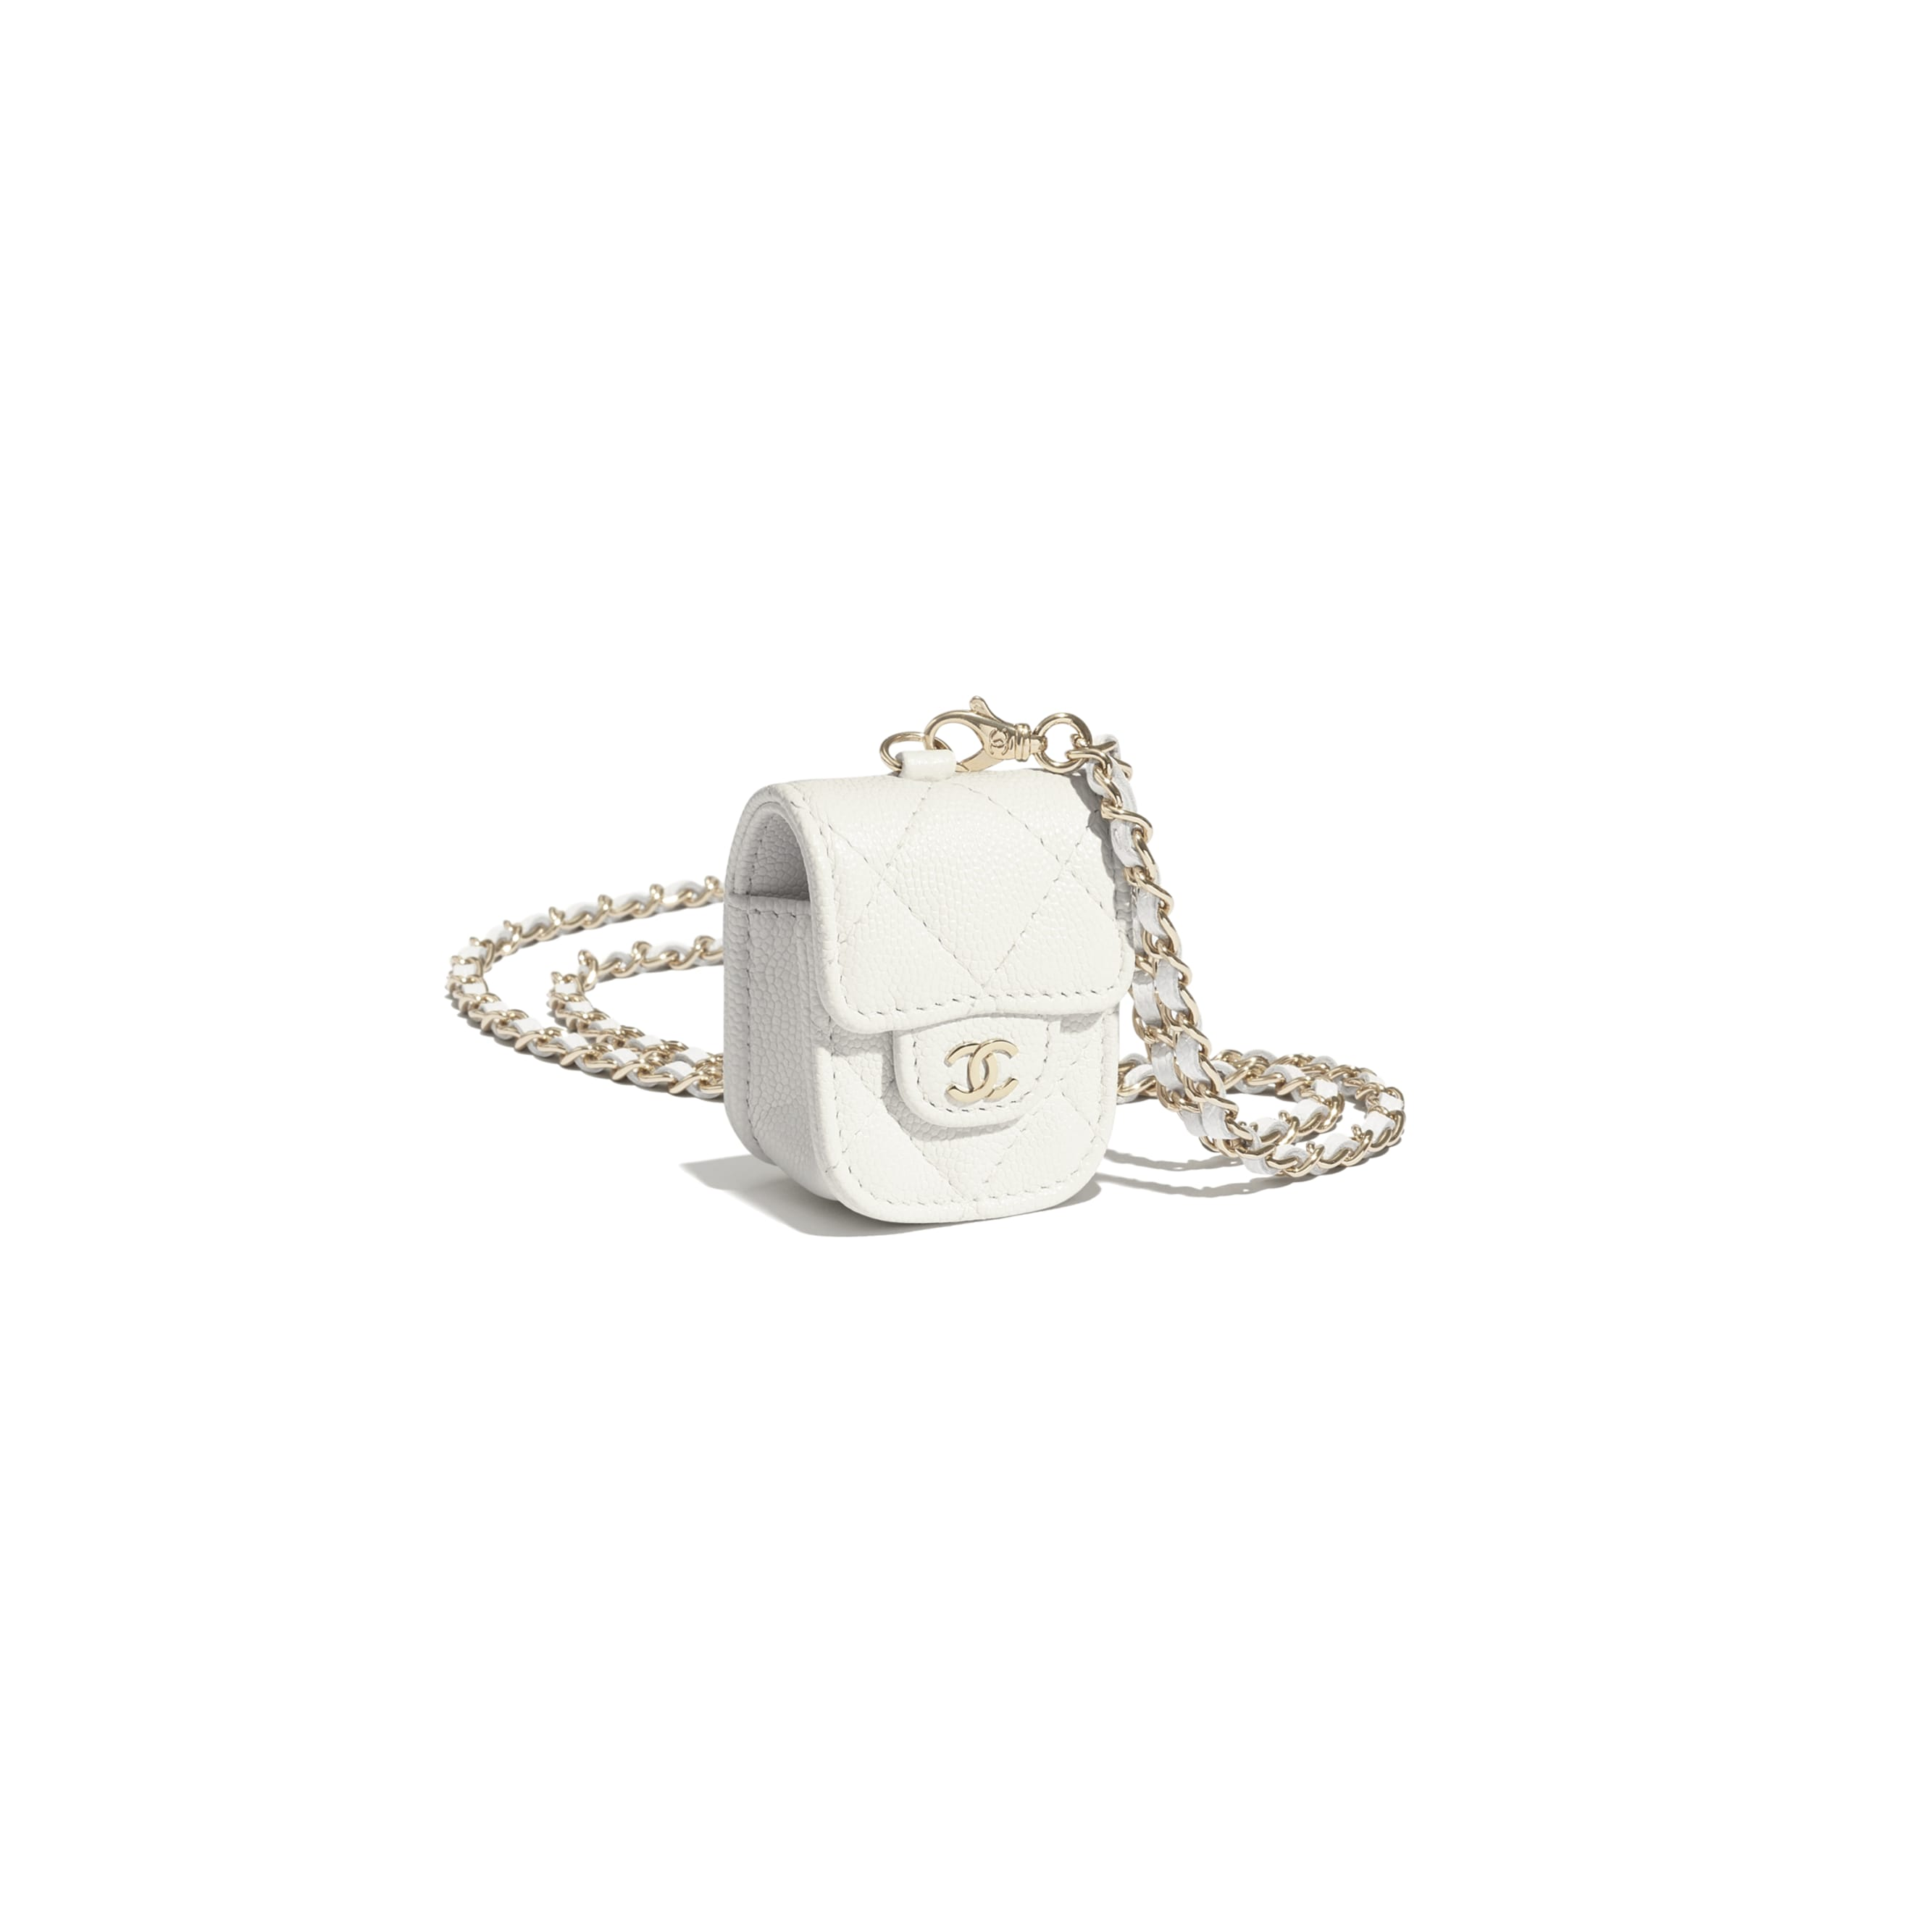 AirPods Case - White - Grained Shiny Calfskin & Gold-Tone Metal - CHANEL - Other view - see standard sized version